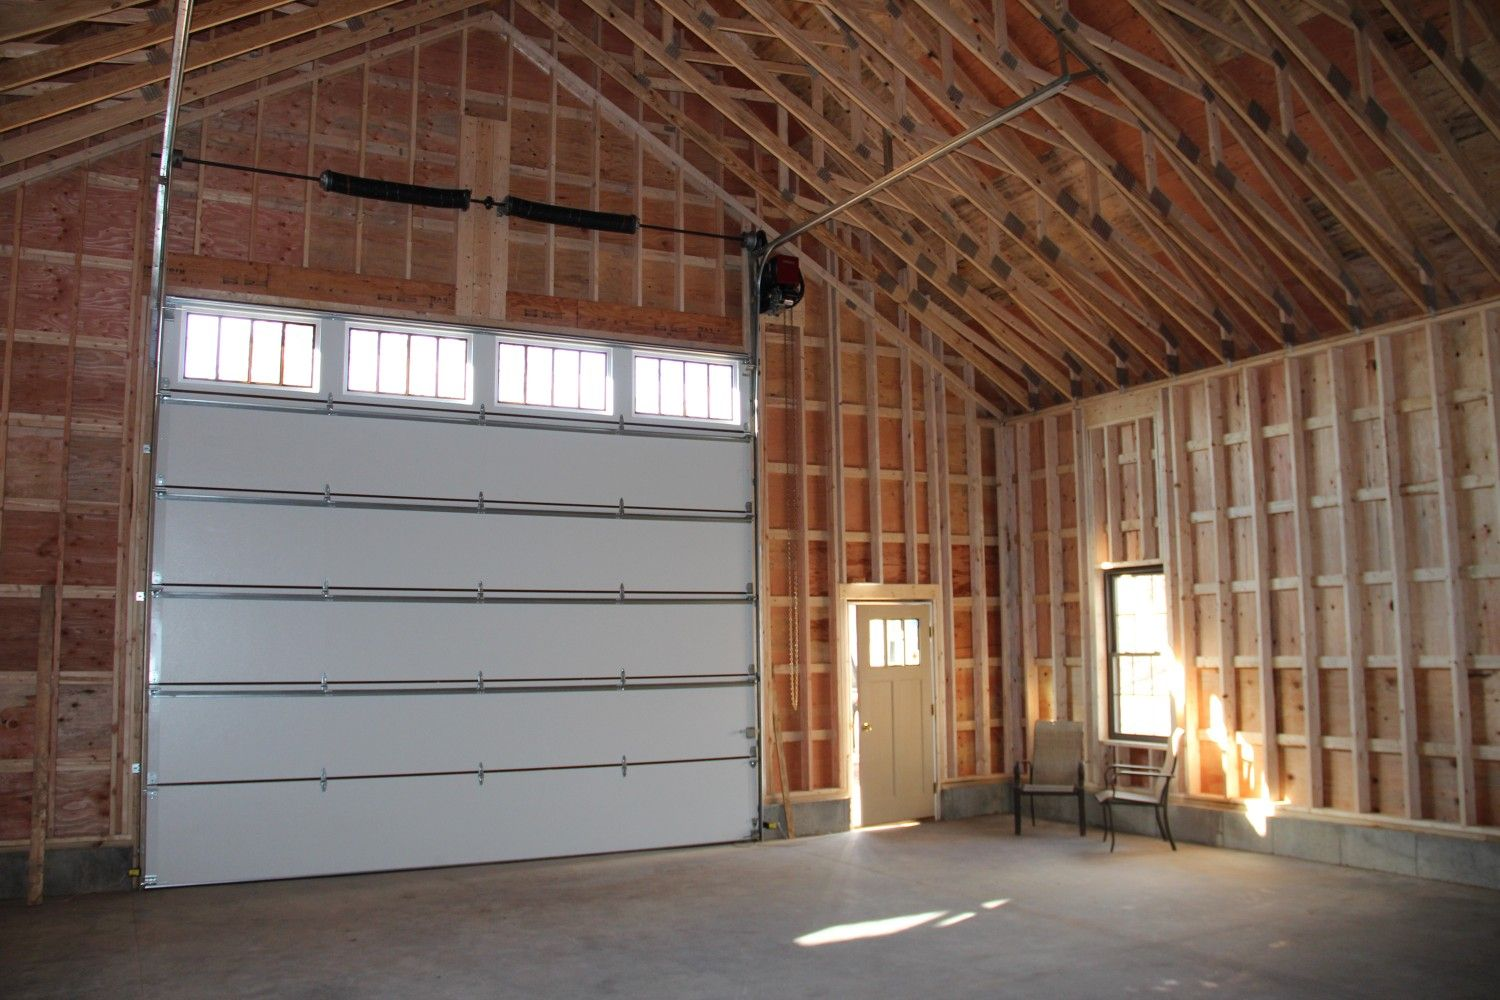 36 X 68 Newport Garage The Barn Yard Great Country Garages Home Building Tips Overhead Garage Door Cathedral Ceiling